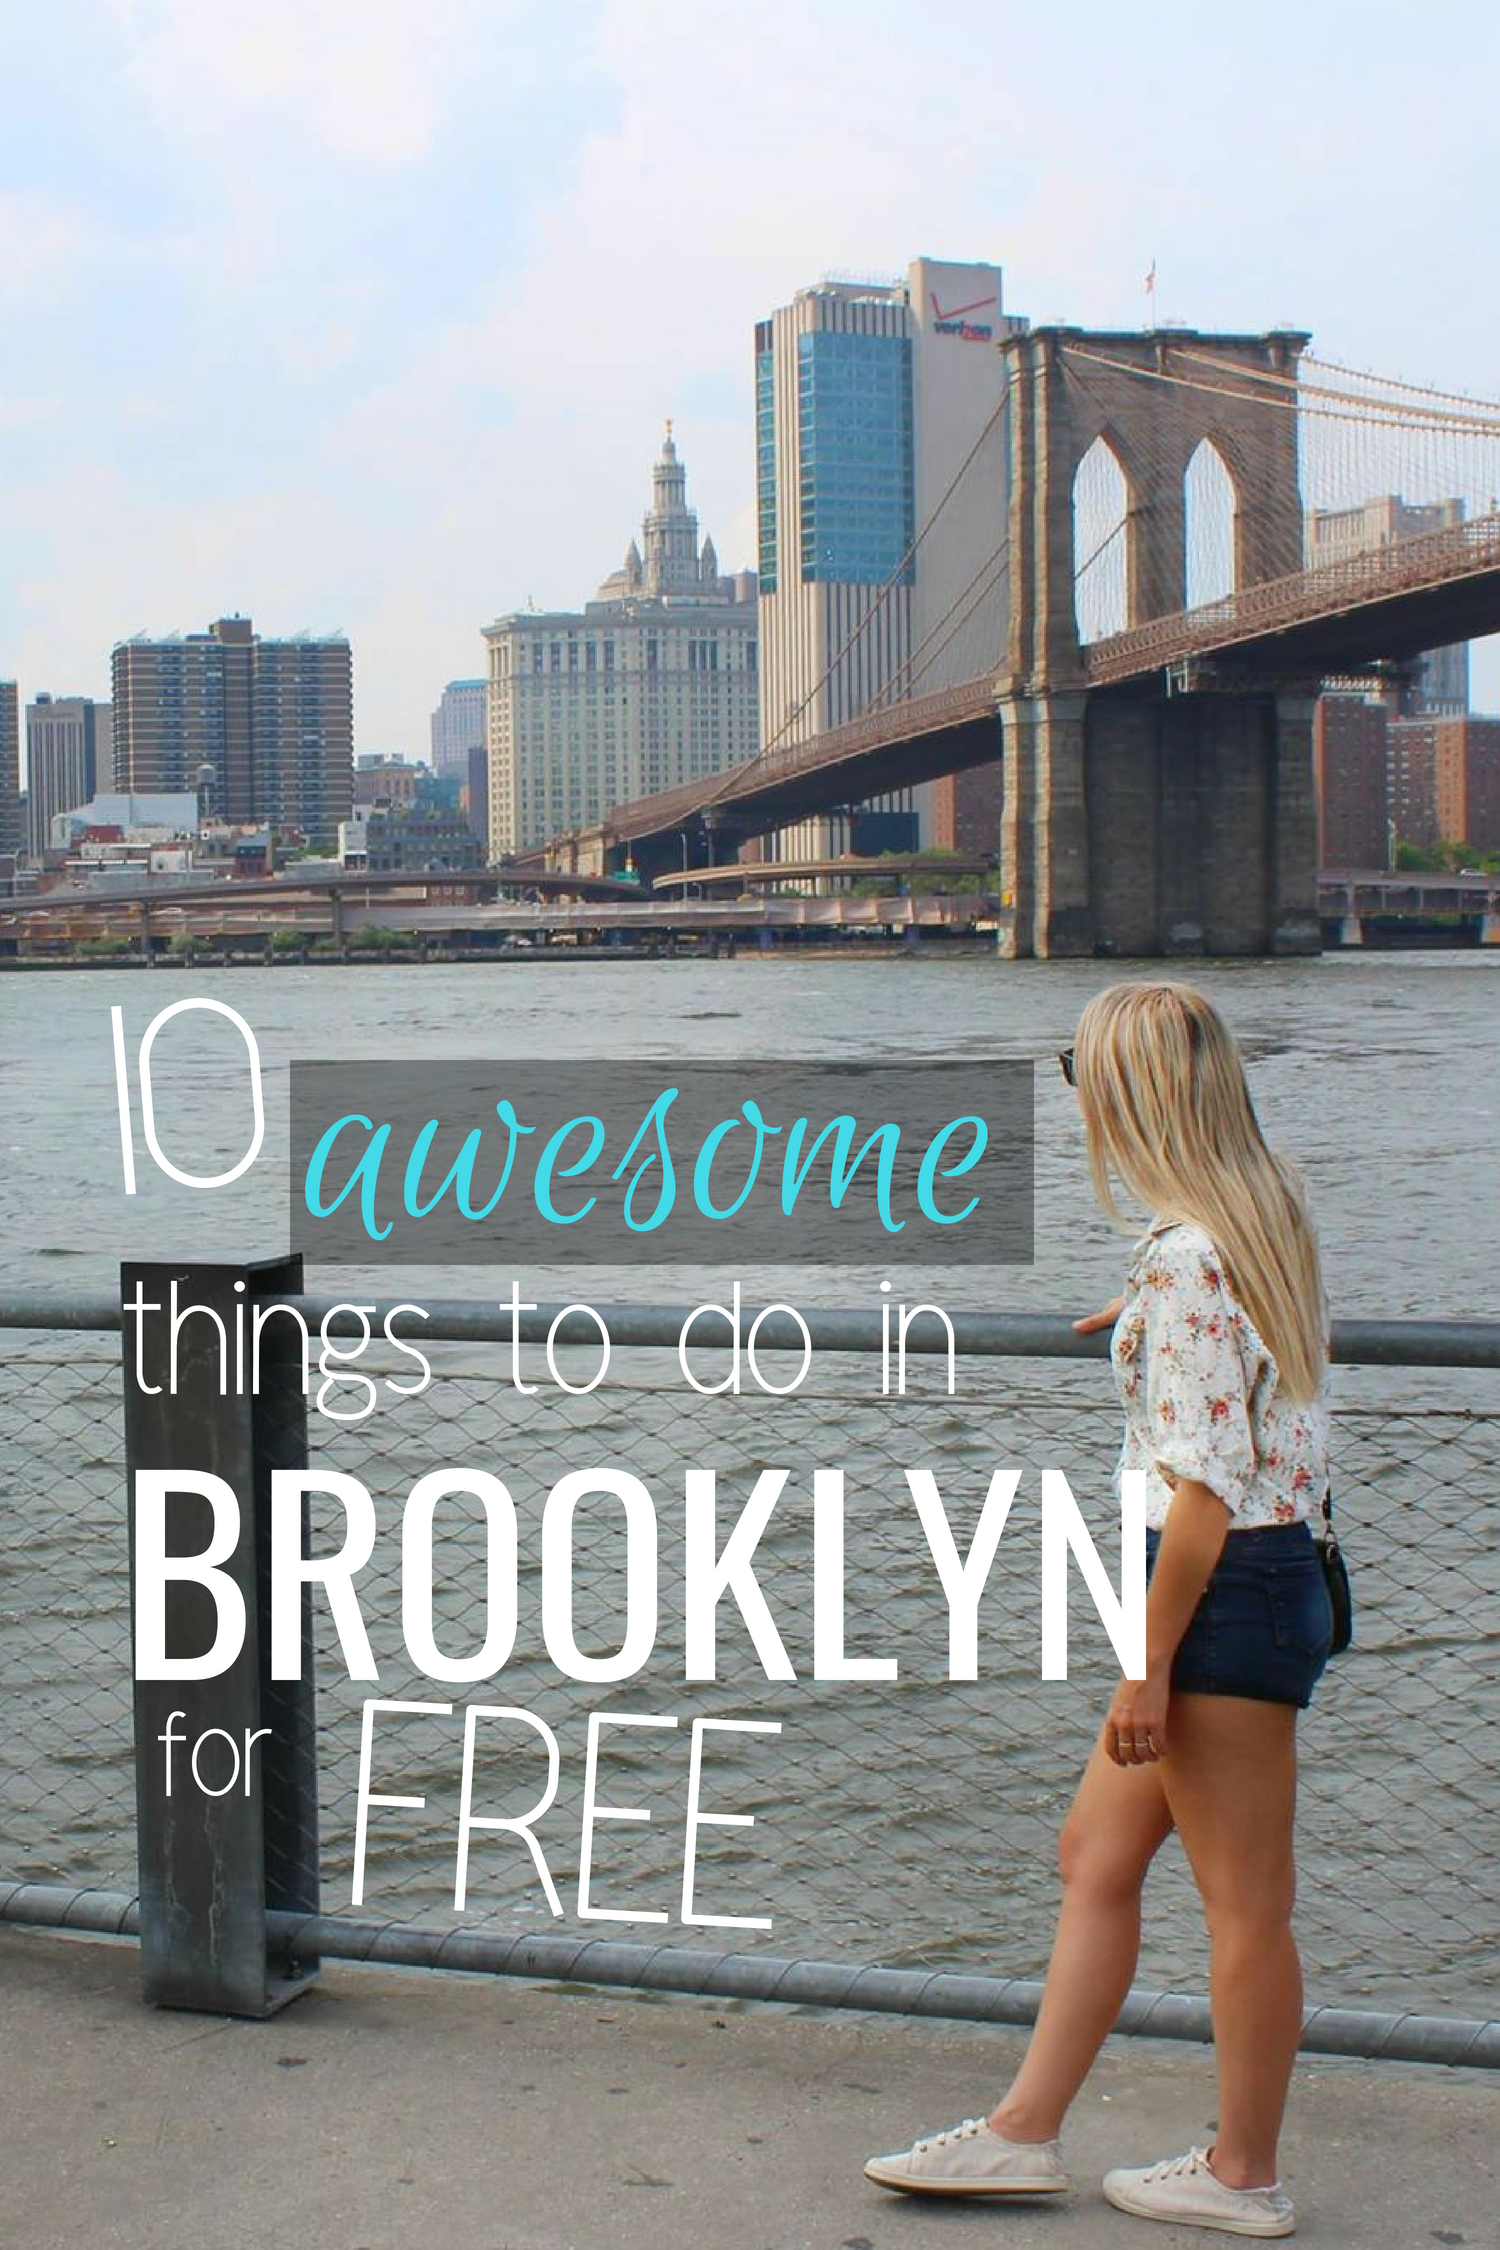 10 Awesome Things To Do in Brooklyn for Free!   Brooklyn